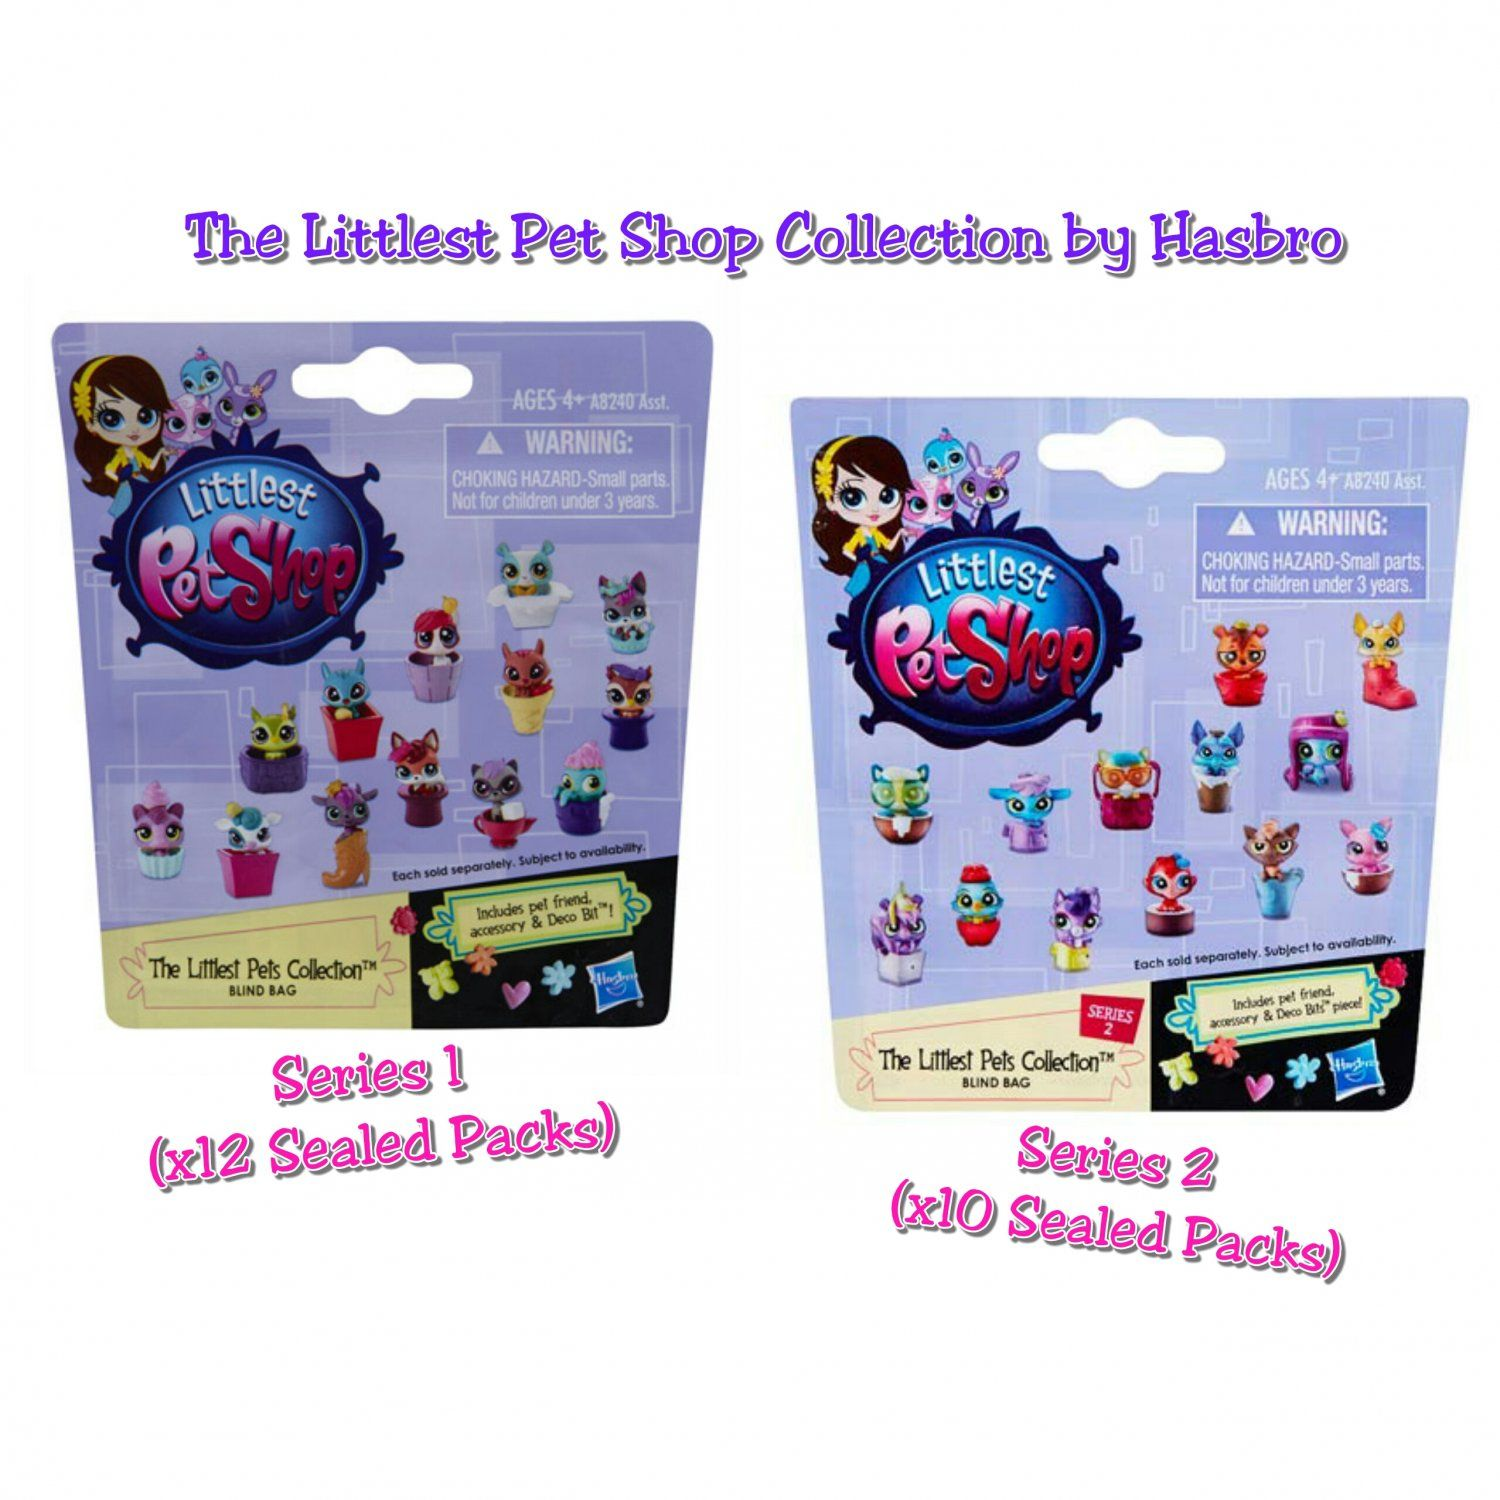 Lot Of 23 Littlest Pet Shop The Littlest Pets Collection Mystery Blind Bag Series 1 2 By Hasbro Sealed Packs Littlest Pet Shop Pet Shop Little Pets